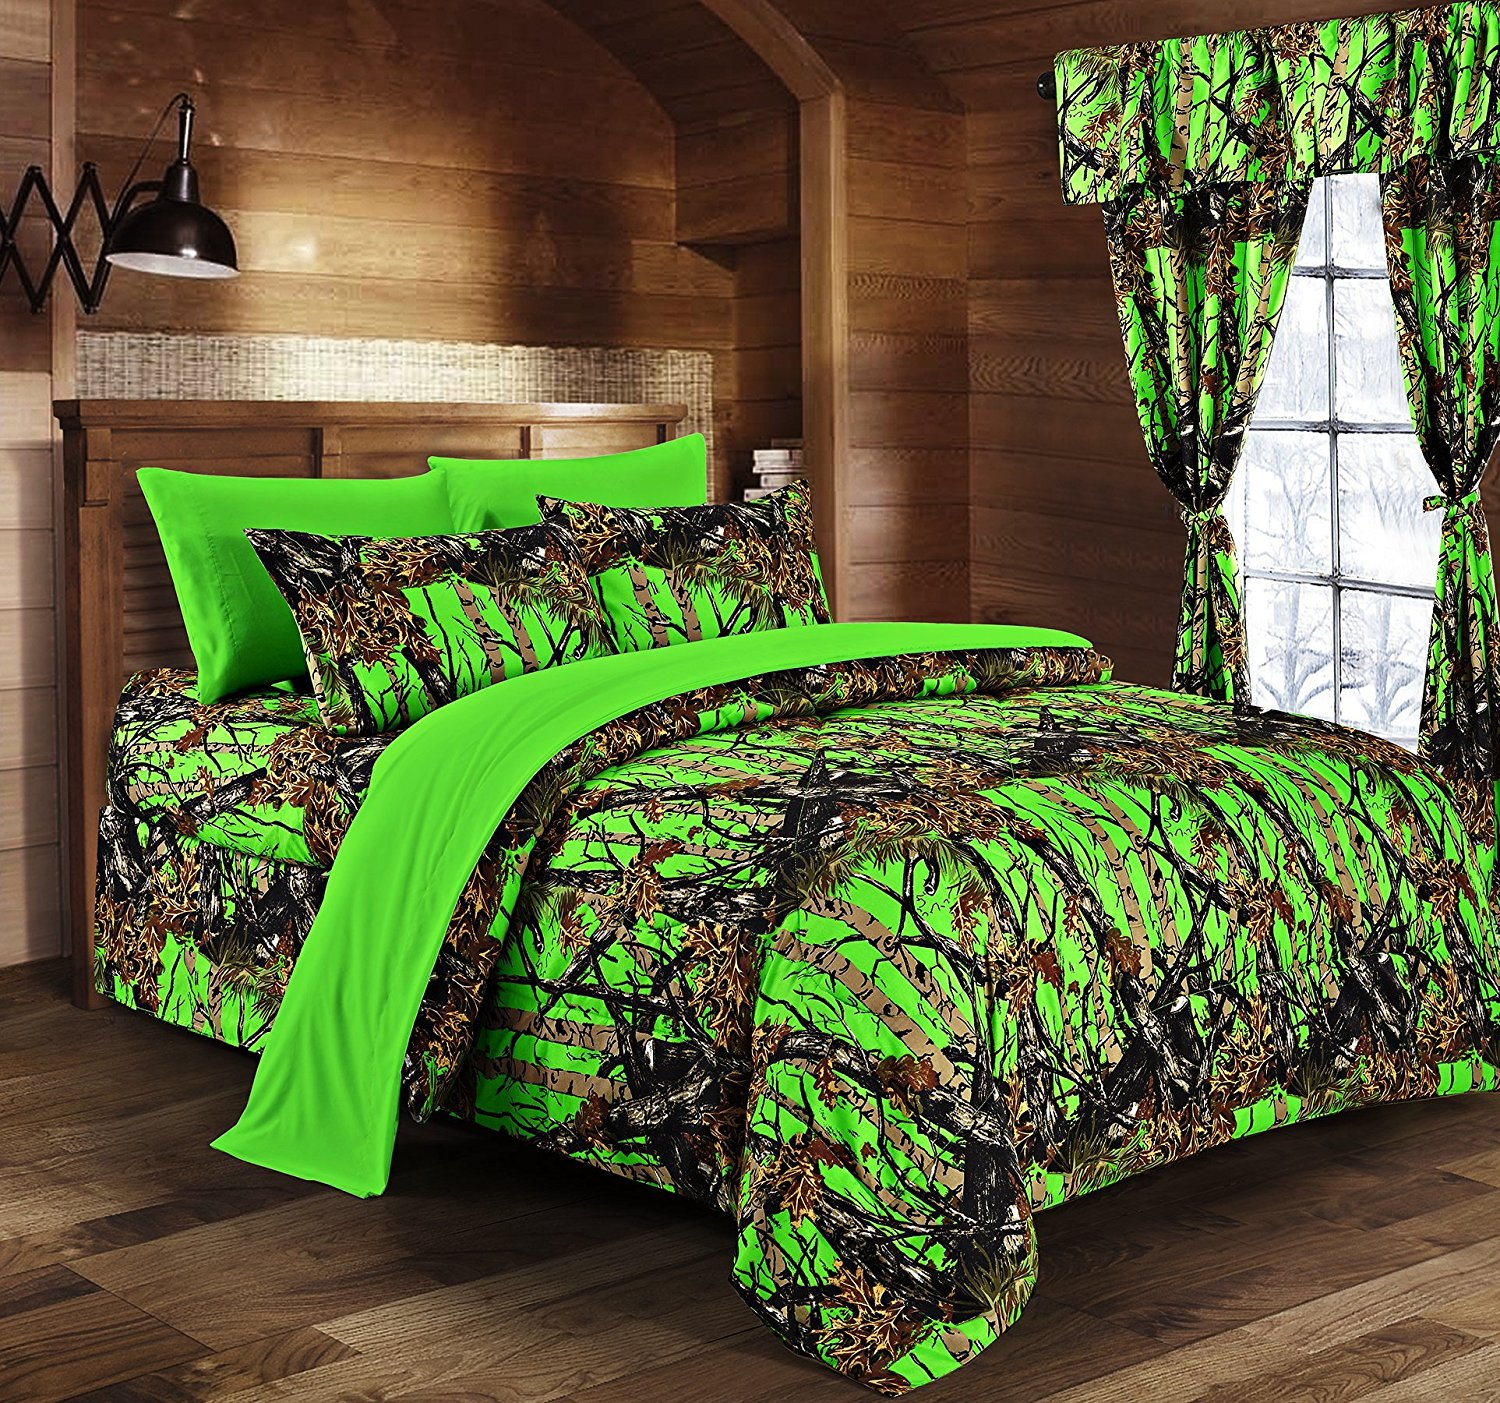 Regal Comfort   SPRING CLEANING SALE   BioHazard Green Camouflage Twin 5pc  Premium Luxury Comforter,